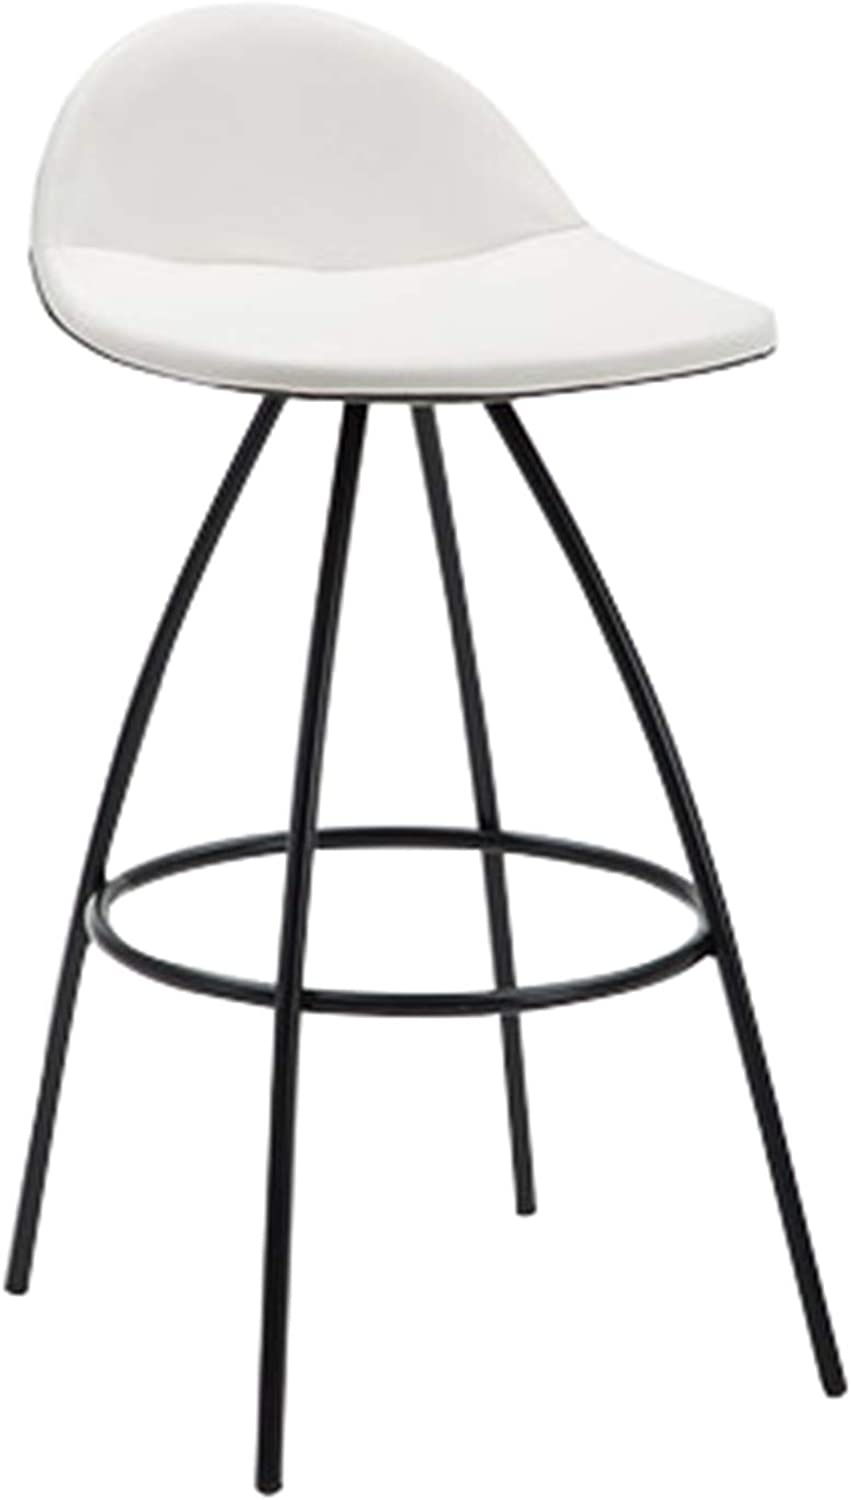 Barstools Retro Bar Stool Kitchen Breakfast Counter Dining Chair with Backrest Metal Frame High Stools-White+Black